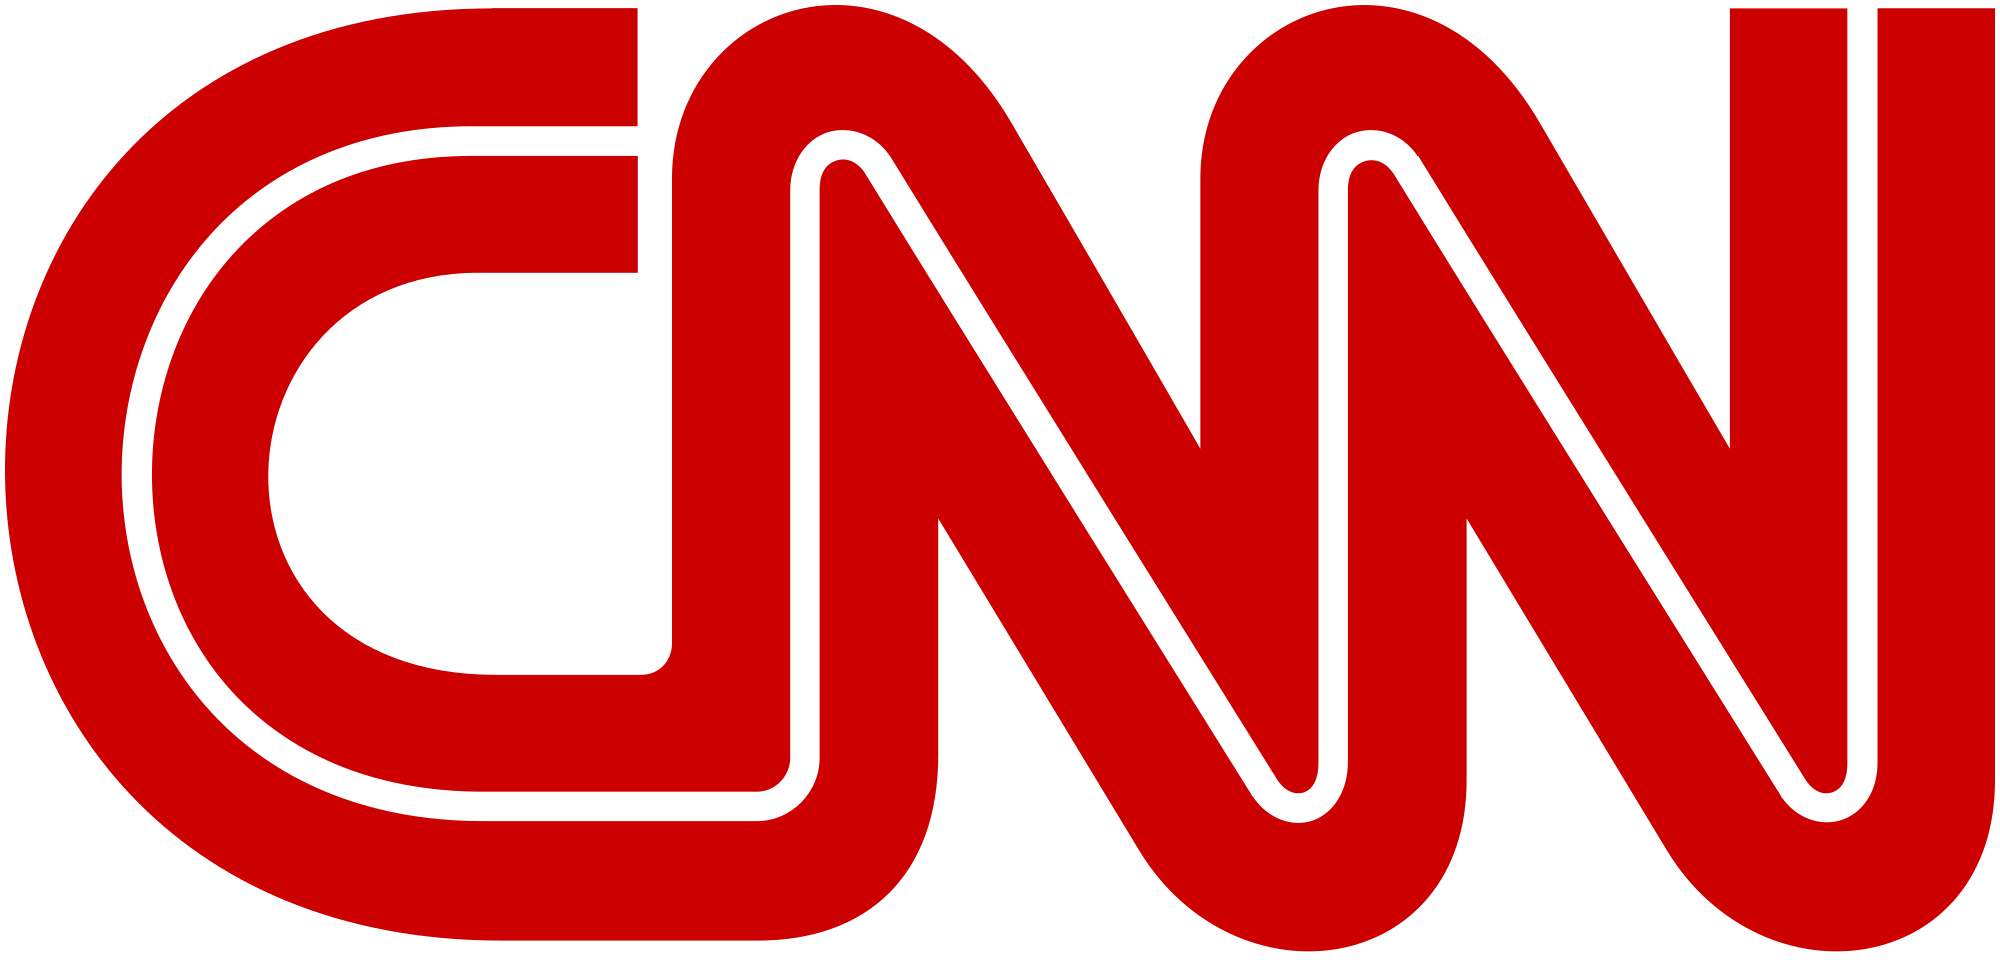 CNN Transparent.png